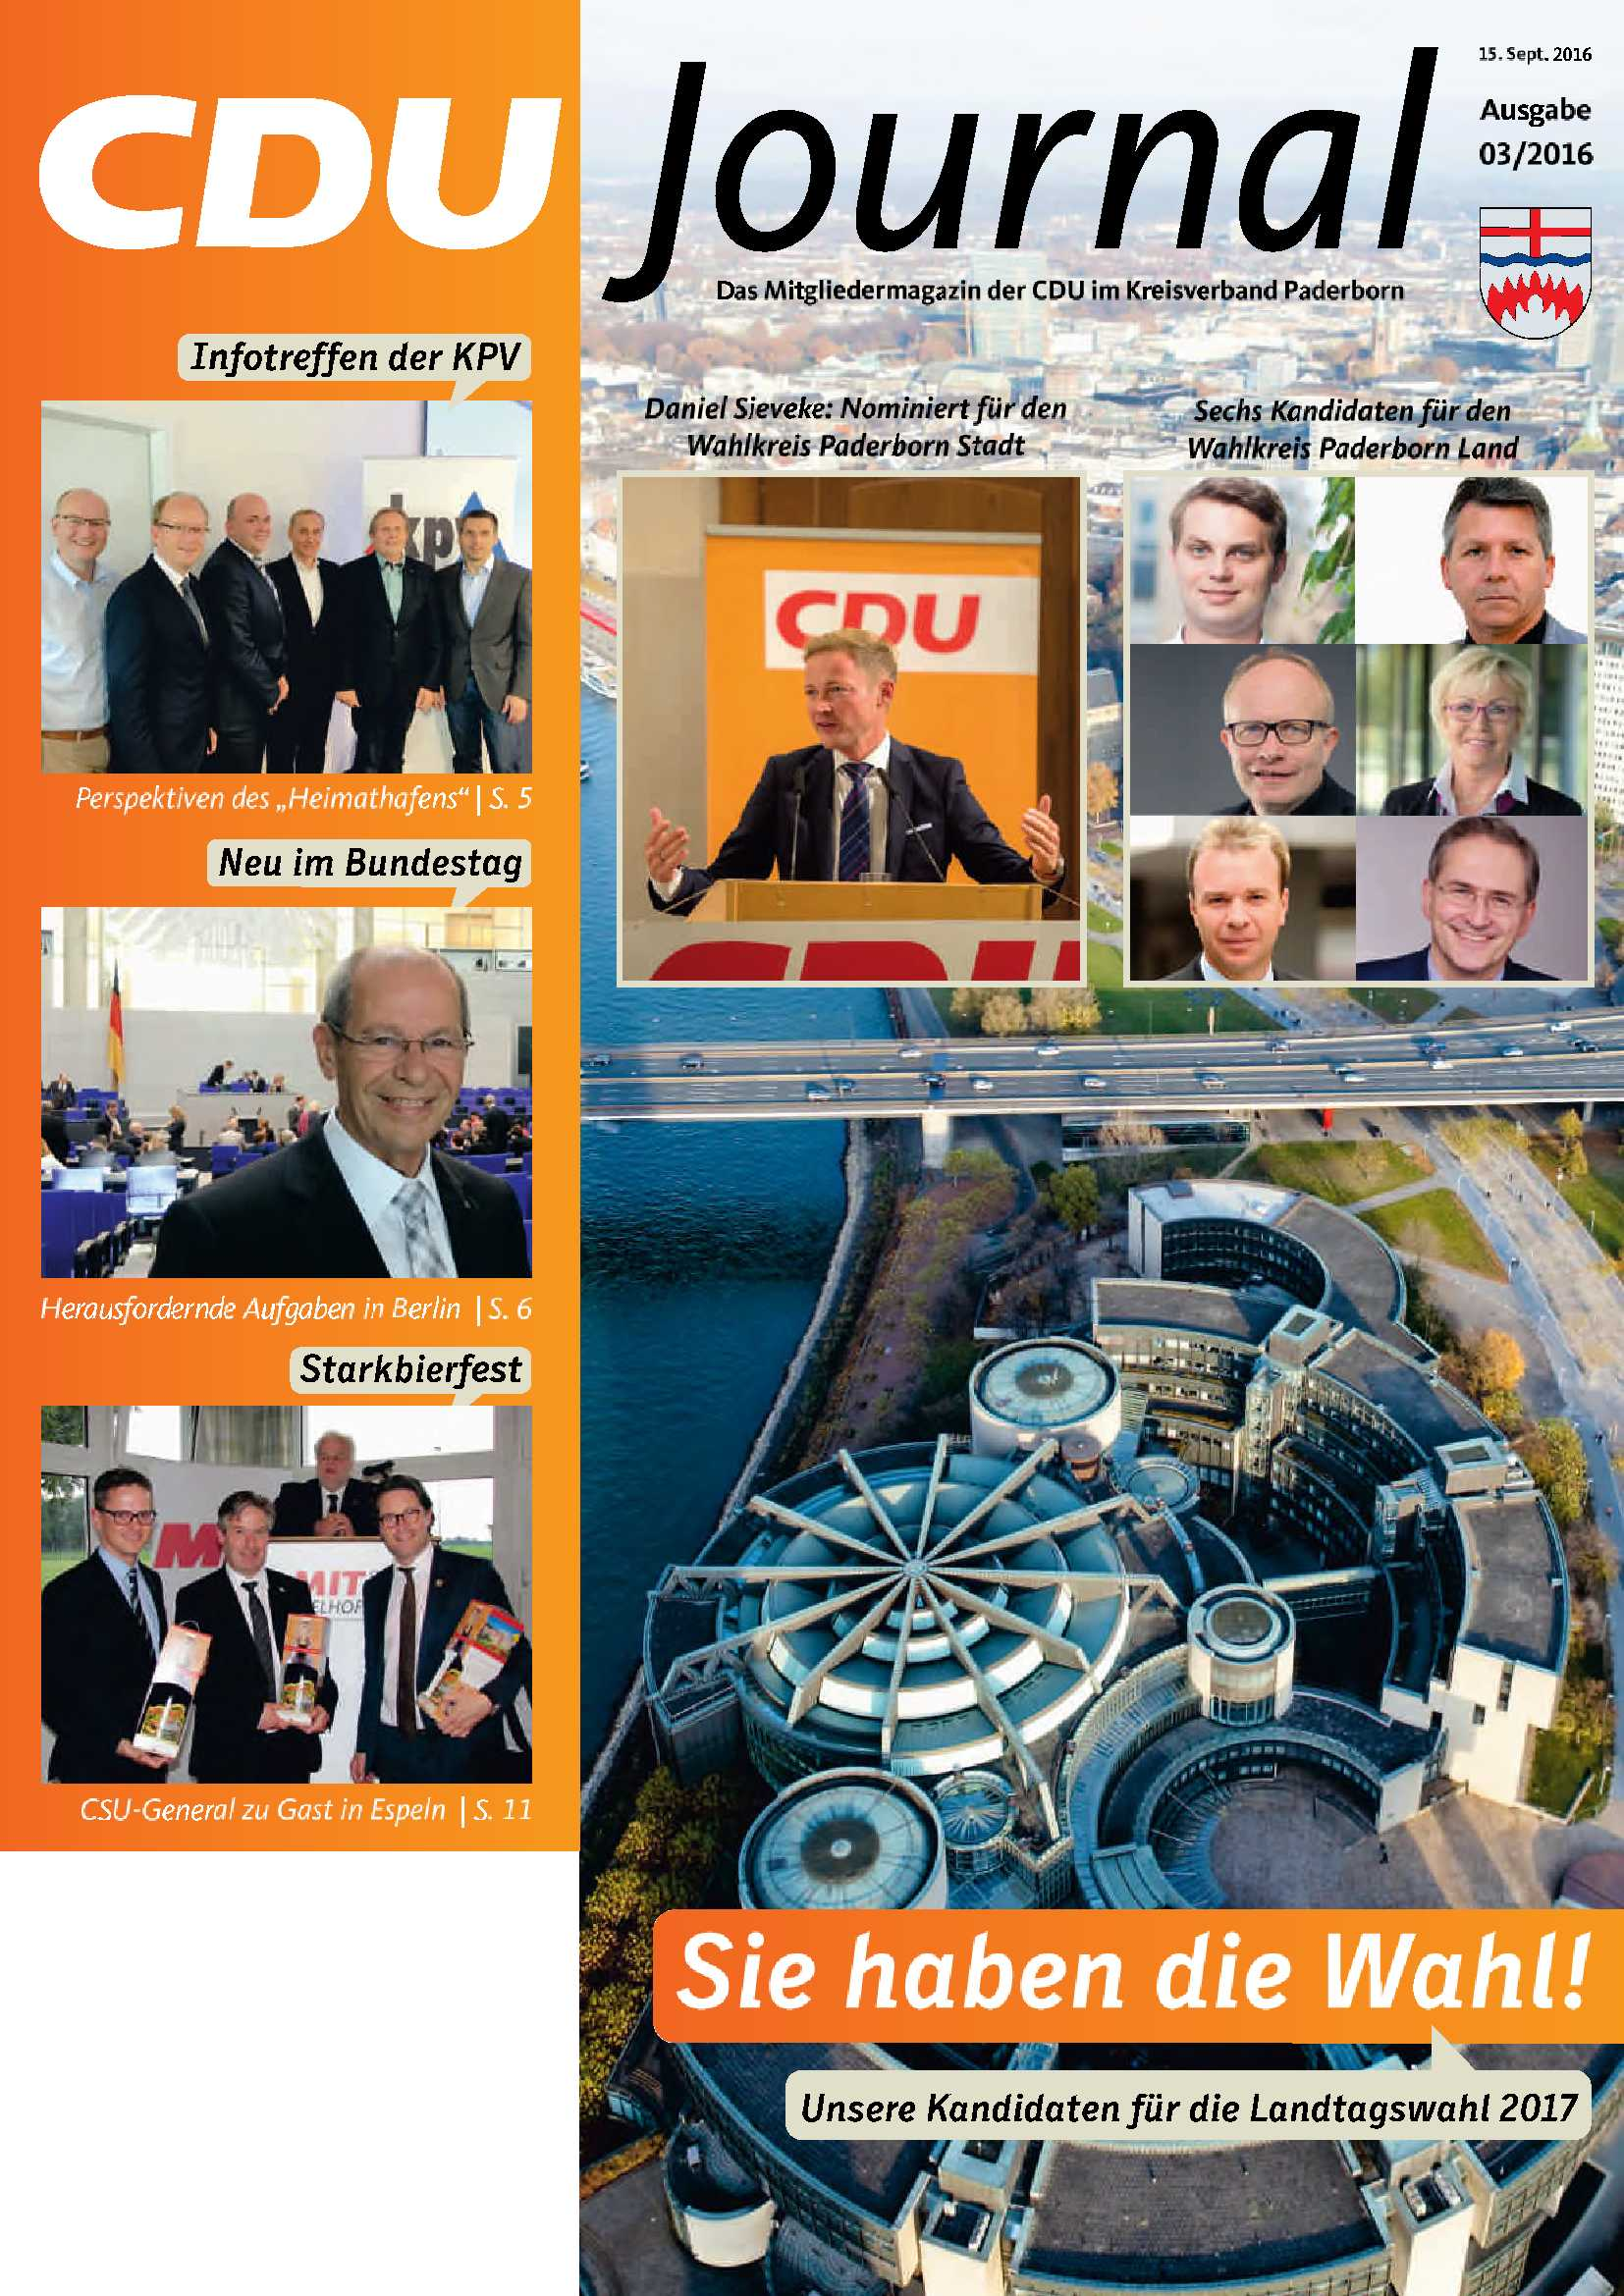 CDU Journal 03 2016 Cover